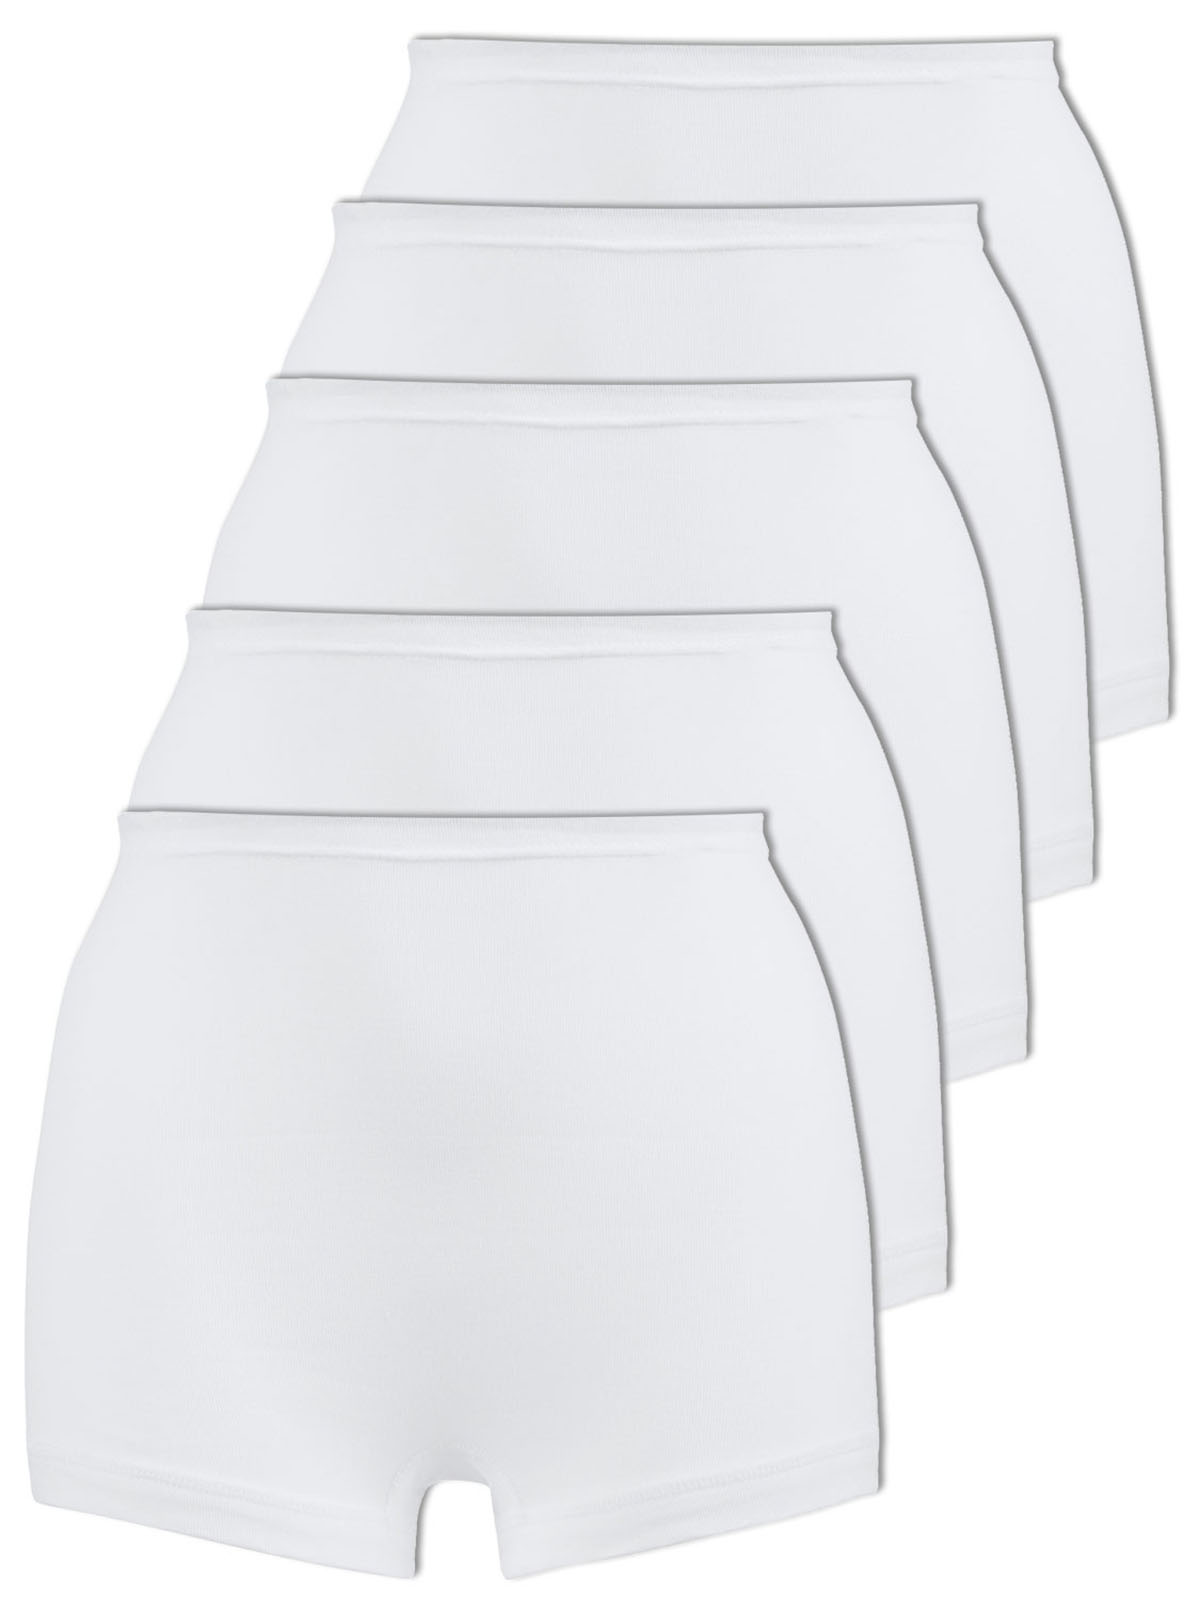 Naturana Pack of 5 Women's Shorts 802201